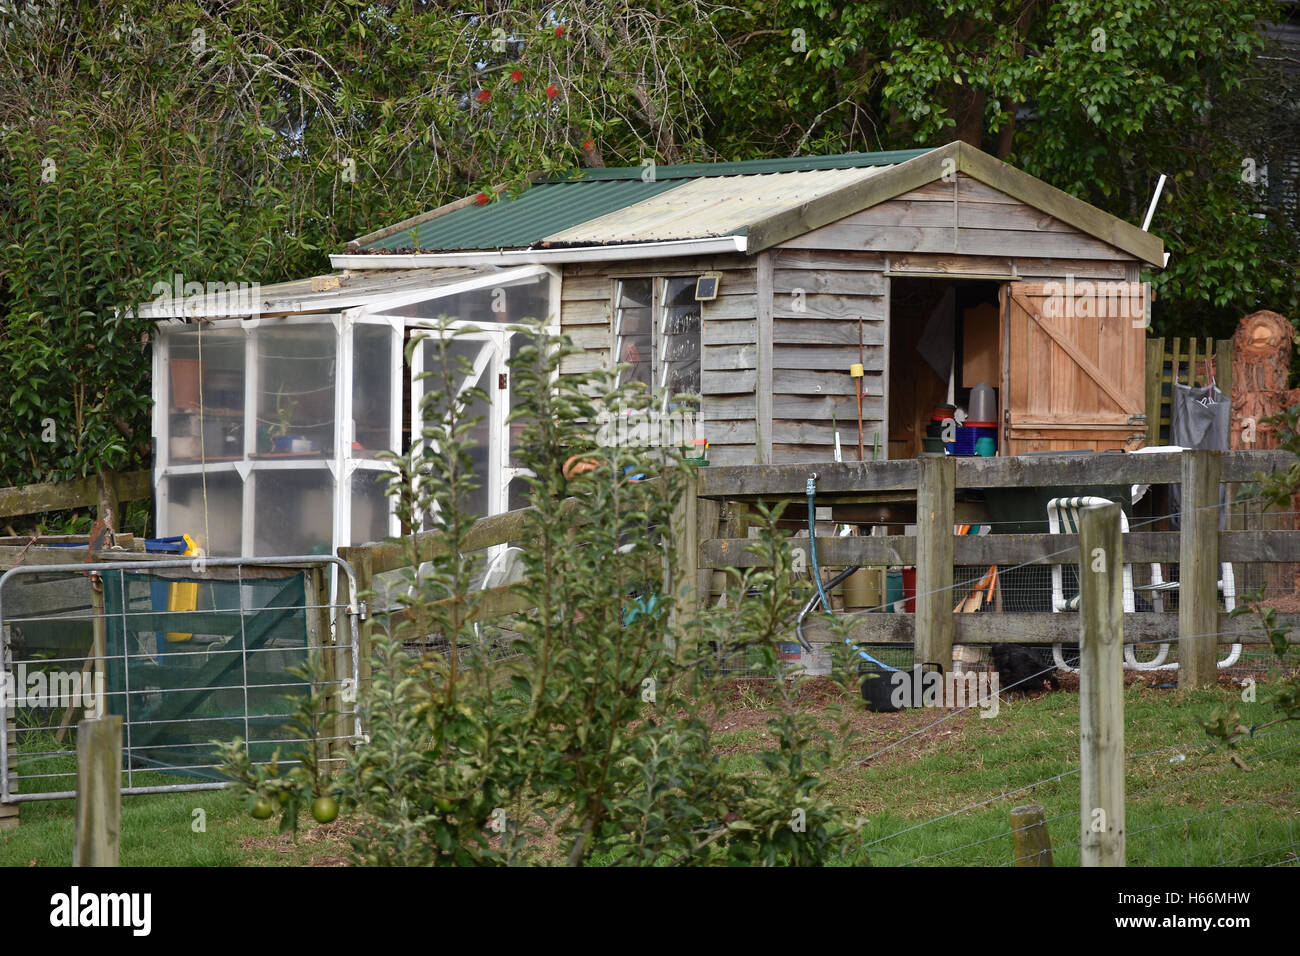 wooden garden shed with small greenhouse attached - Garden Sheds With Greenhouse